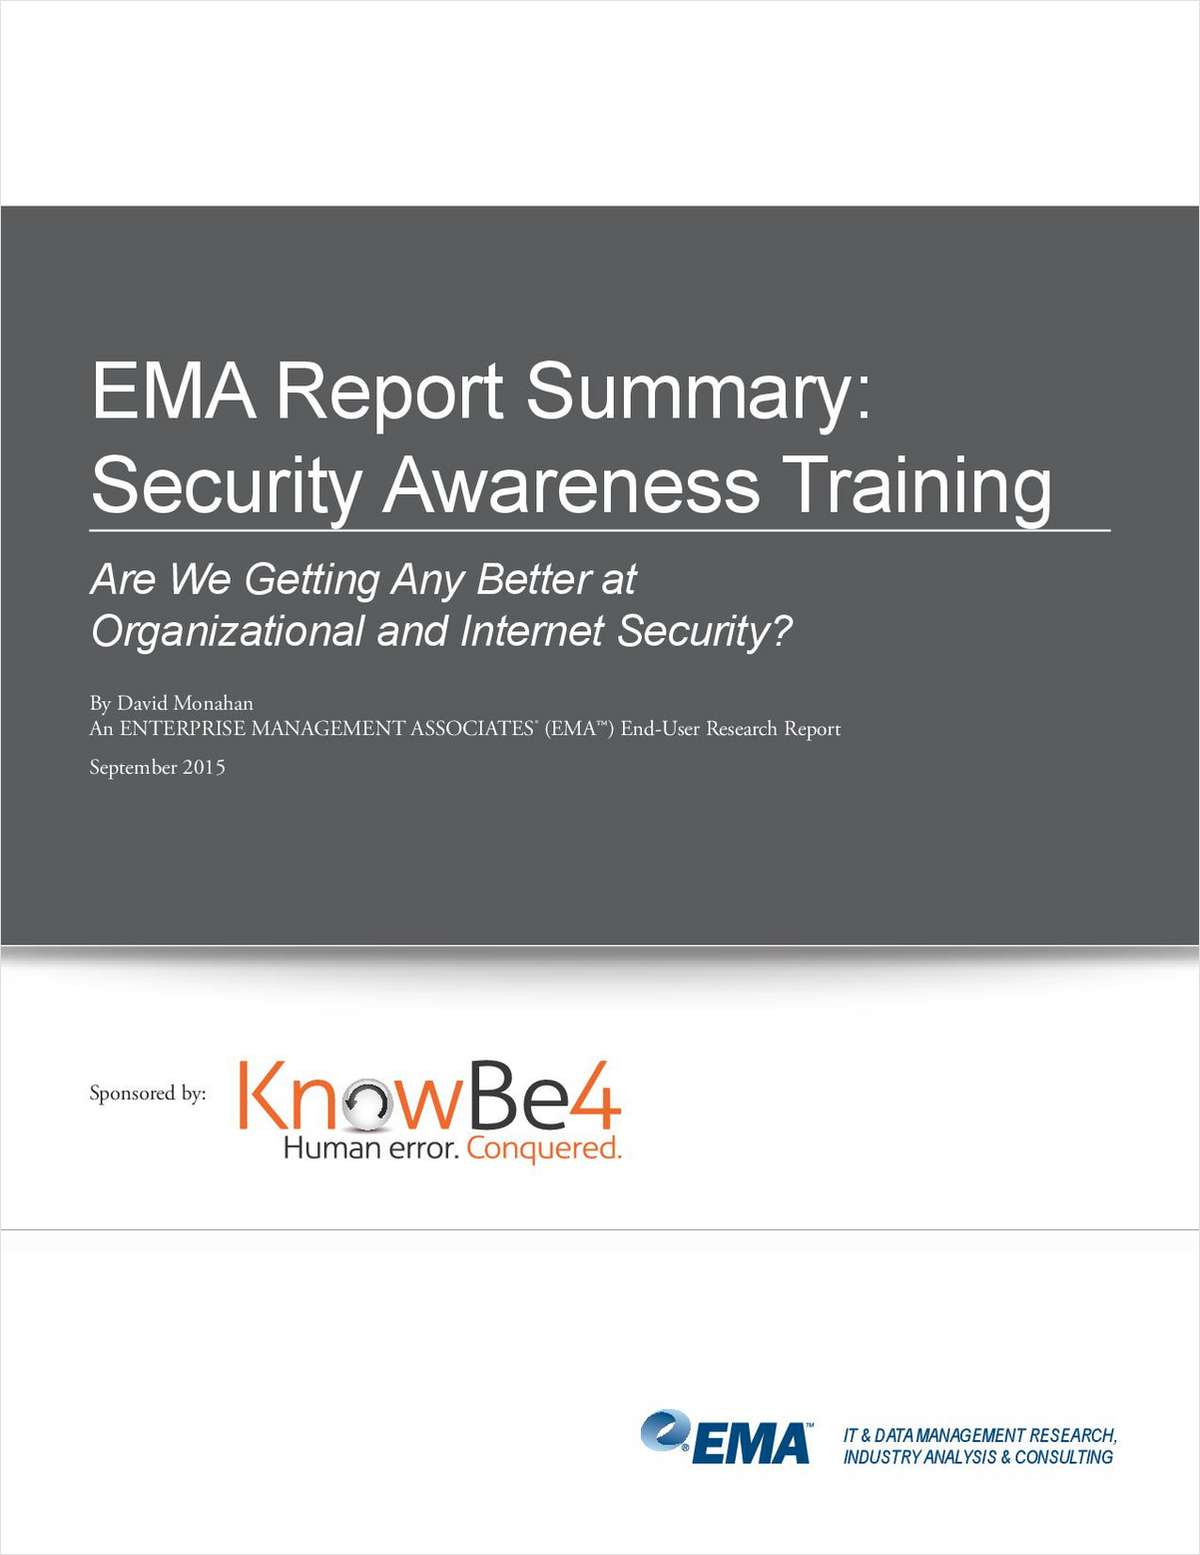 EMA Report Summary: Security Awareness Training